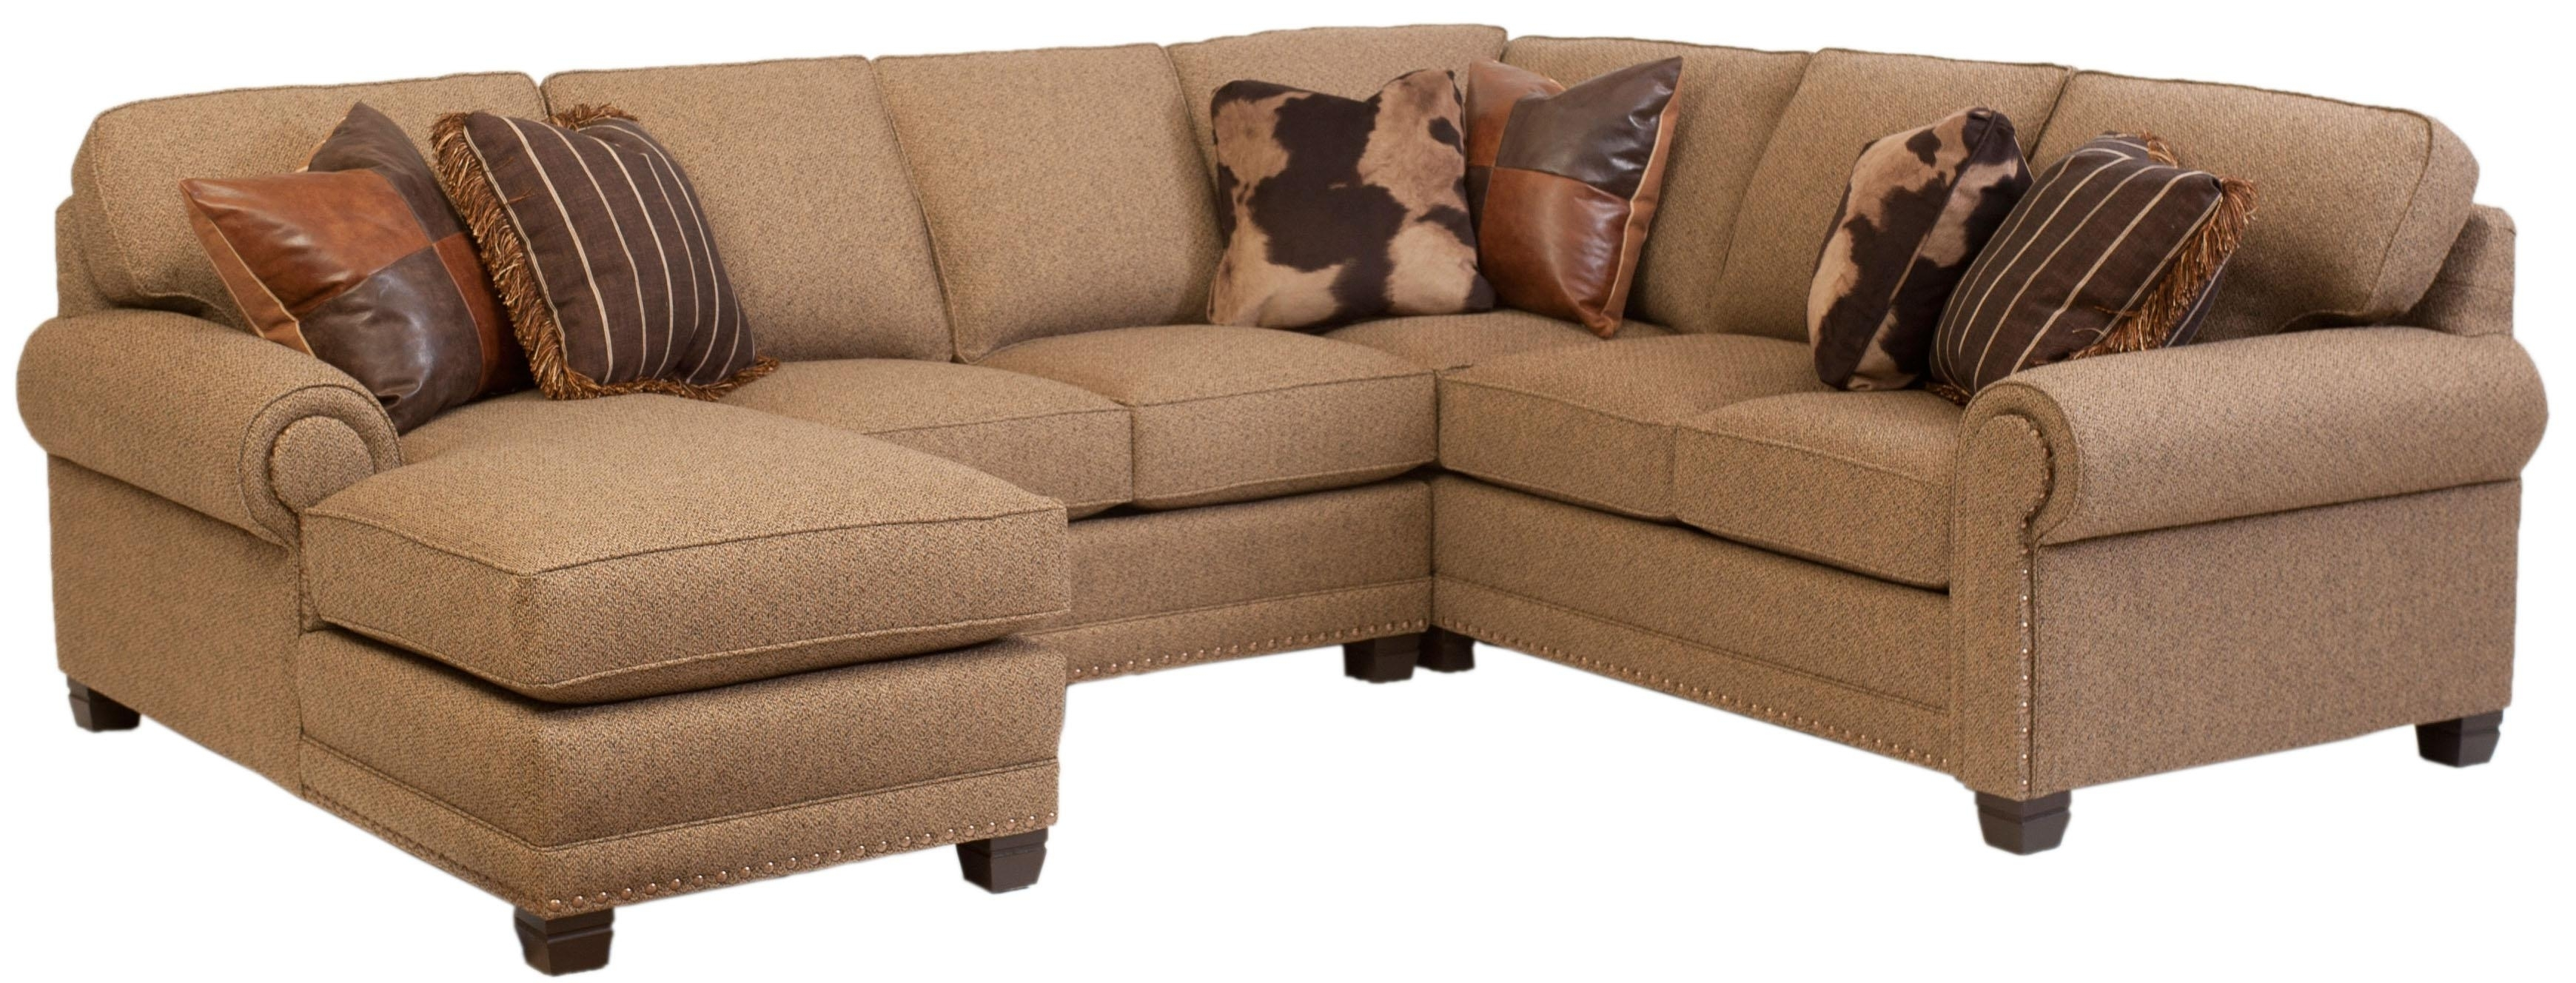 Remarkable 3 Piece Leather Sectional Sofa With Chaise 48 For in Gordon 3 Piece Sectionals With Raf Chaise